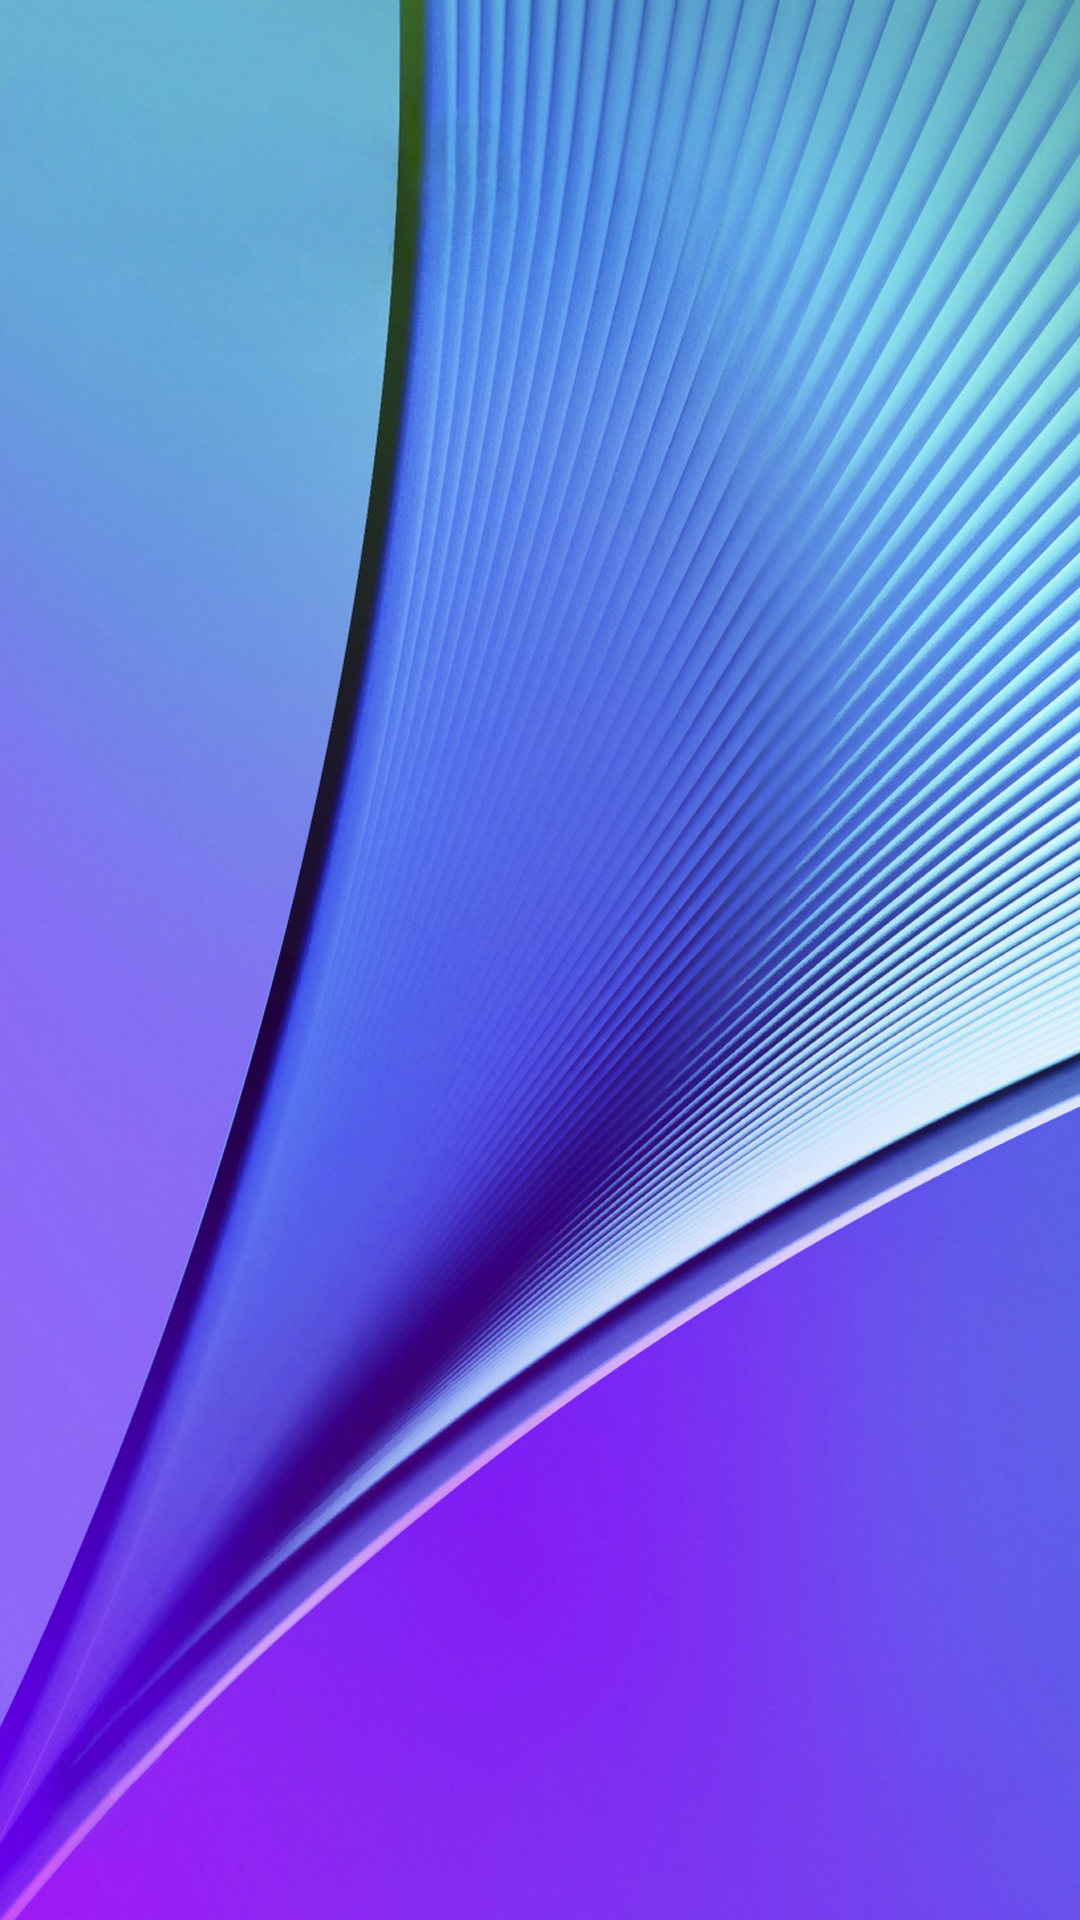 Samsung Galaxy S6 Wallpaper Hd 1080p Posted By John Anderson